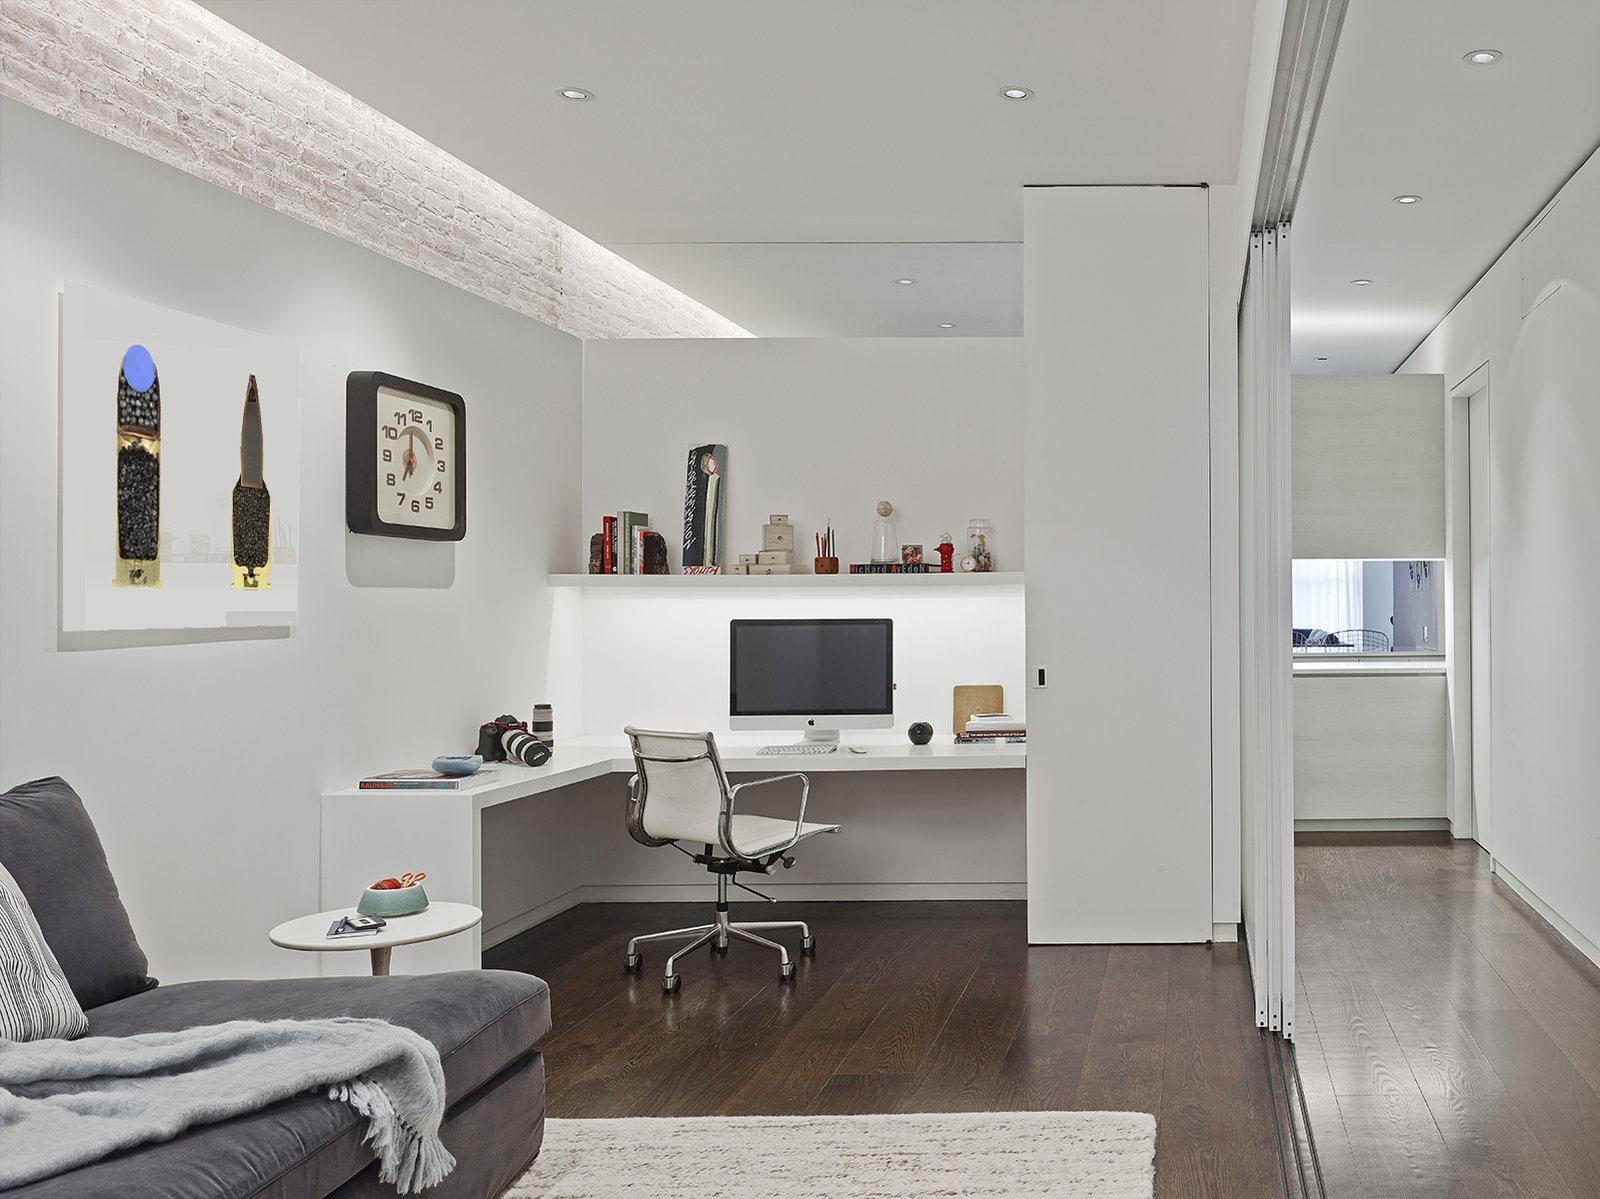 590BC got creative with lighting solutions for the space. The firm advises varying the light sources and details to help make dimly lit spaces feel bright. In the office, linear LED fixtures housed within ceiling coves reflect light down the brick walls. Ceiling fixtures illuminate the space as does lighting installed under the built-in shelving. Photo by Frank Oudeman.  Office from A Renovated Loft in SoHo